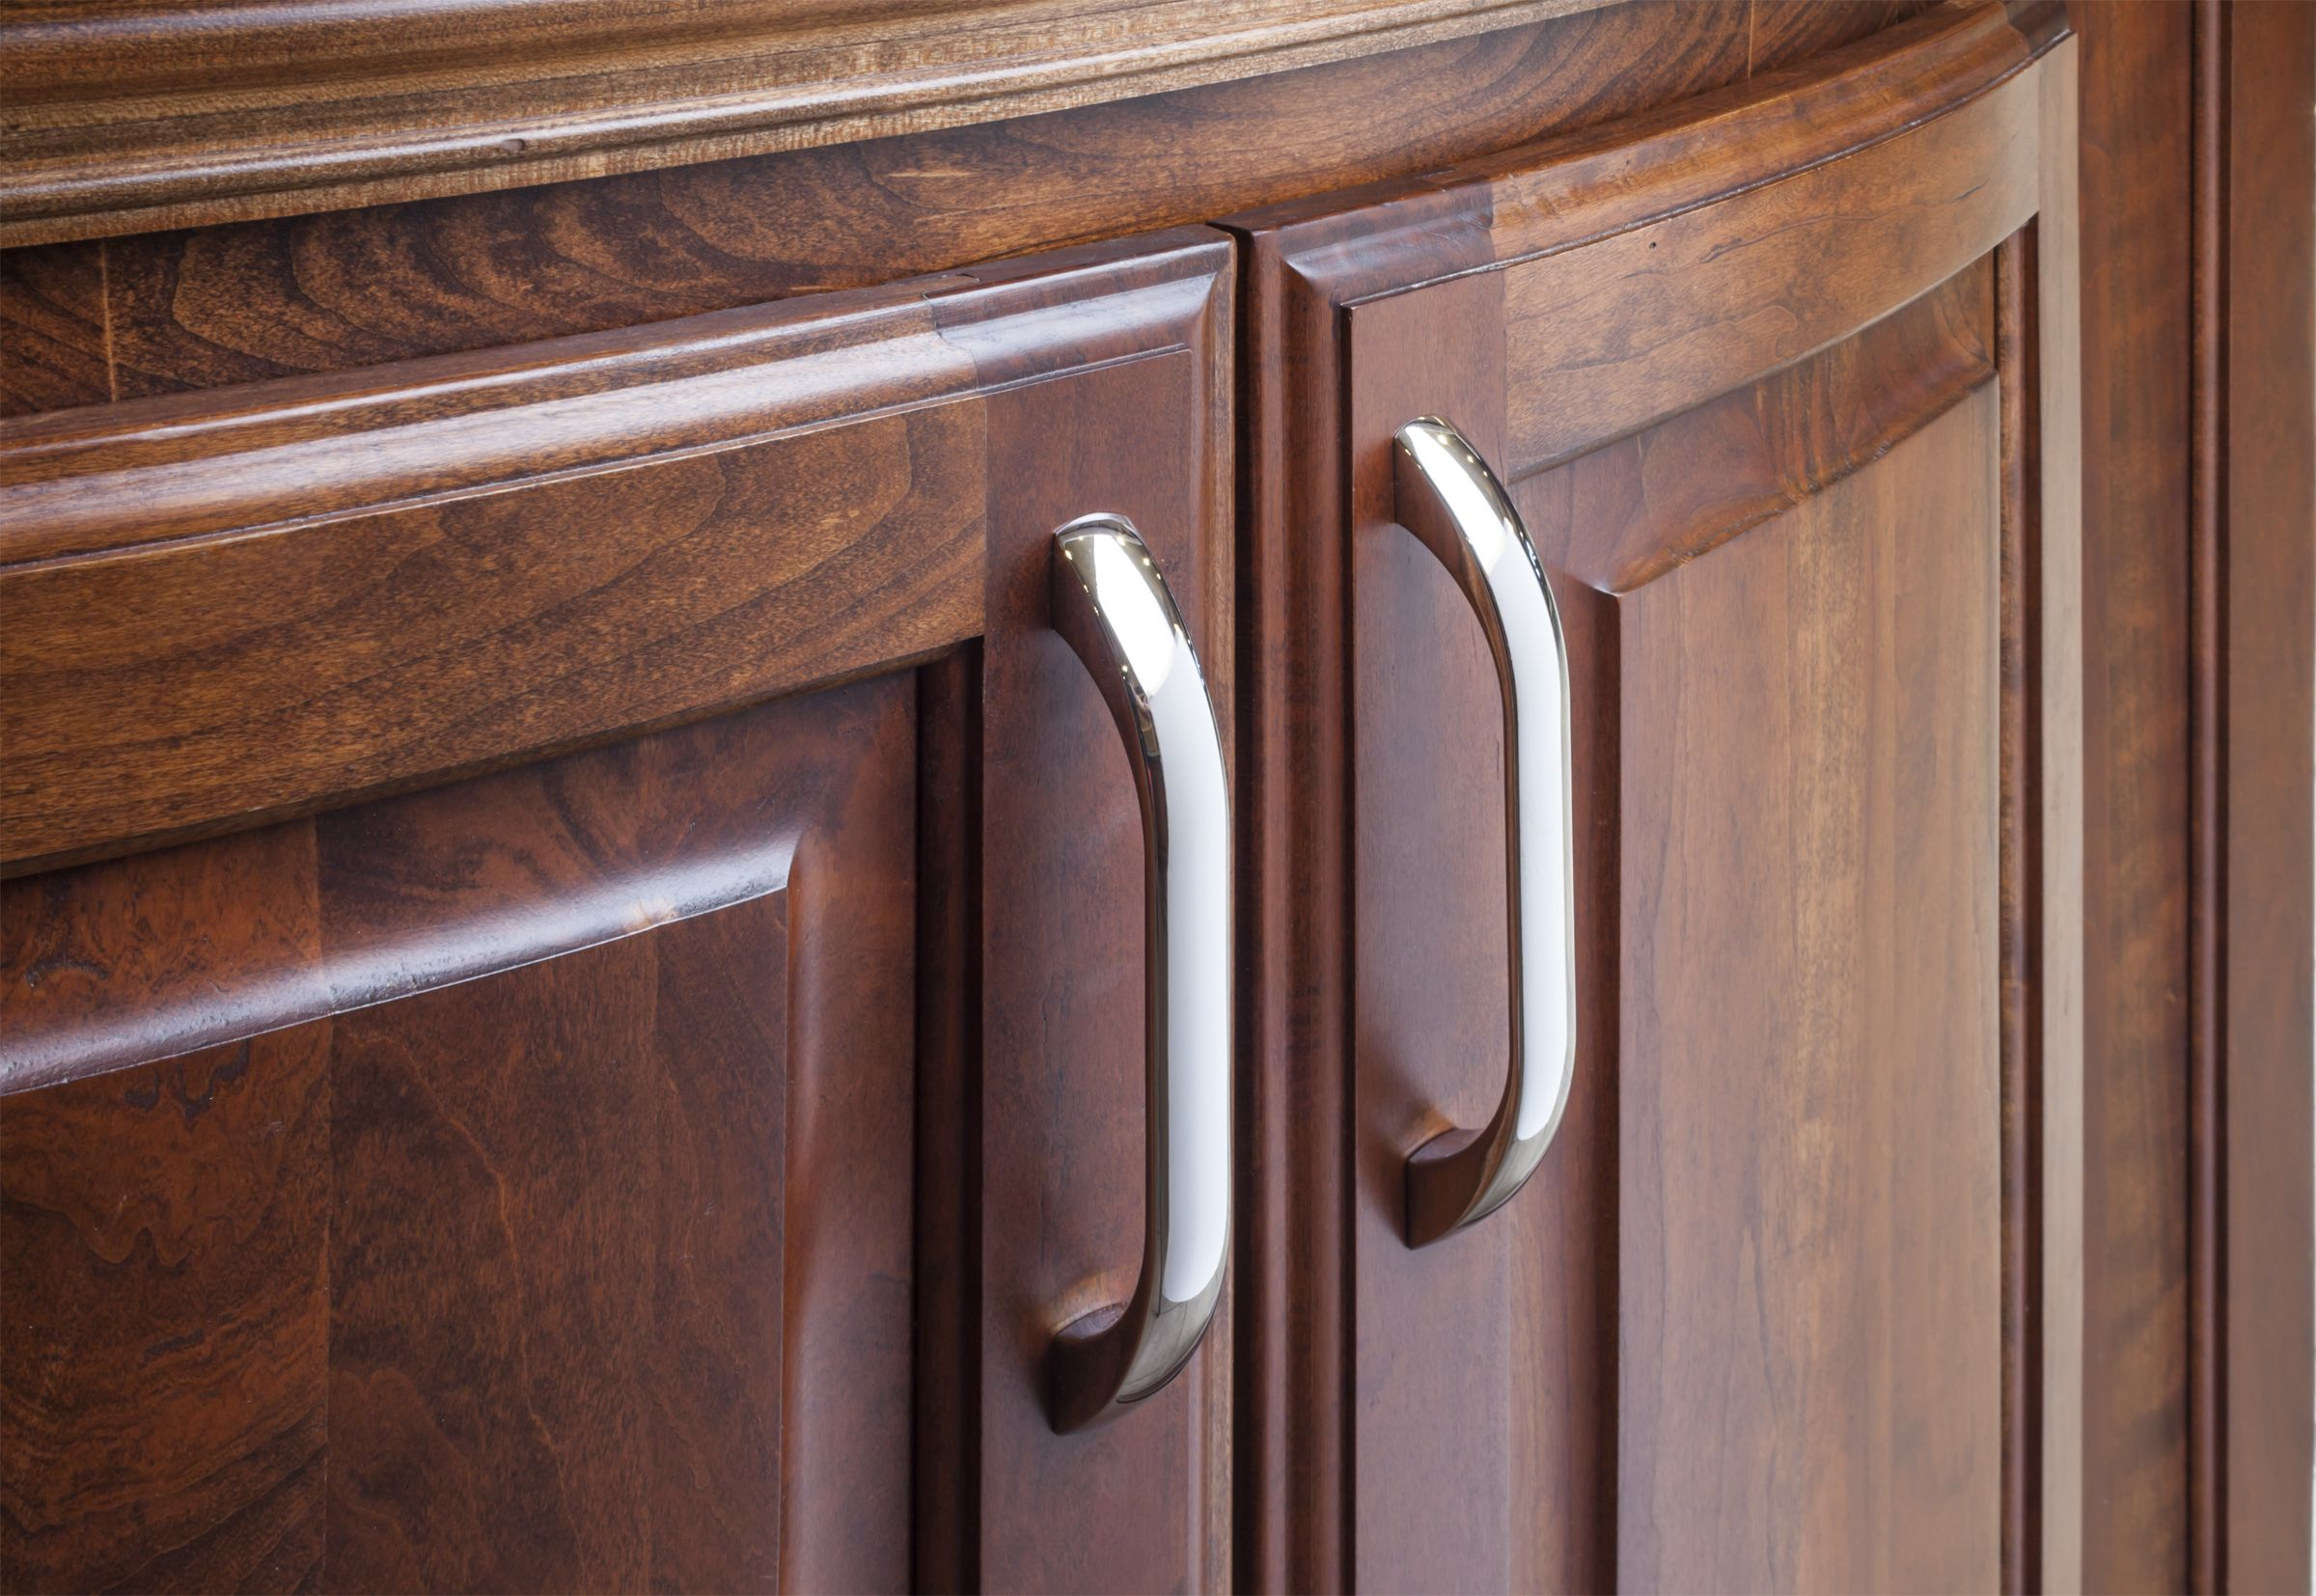 Sonoma Cabinet Pulls From Jeffrey Alexander By Hardware Resources 4128pc Shown In Use Hardware Resources Cabinet Hardware Jeffrey Alexander